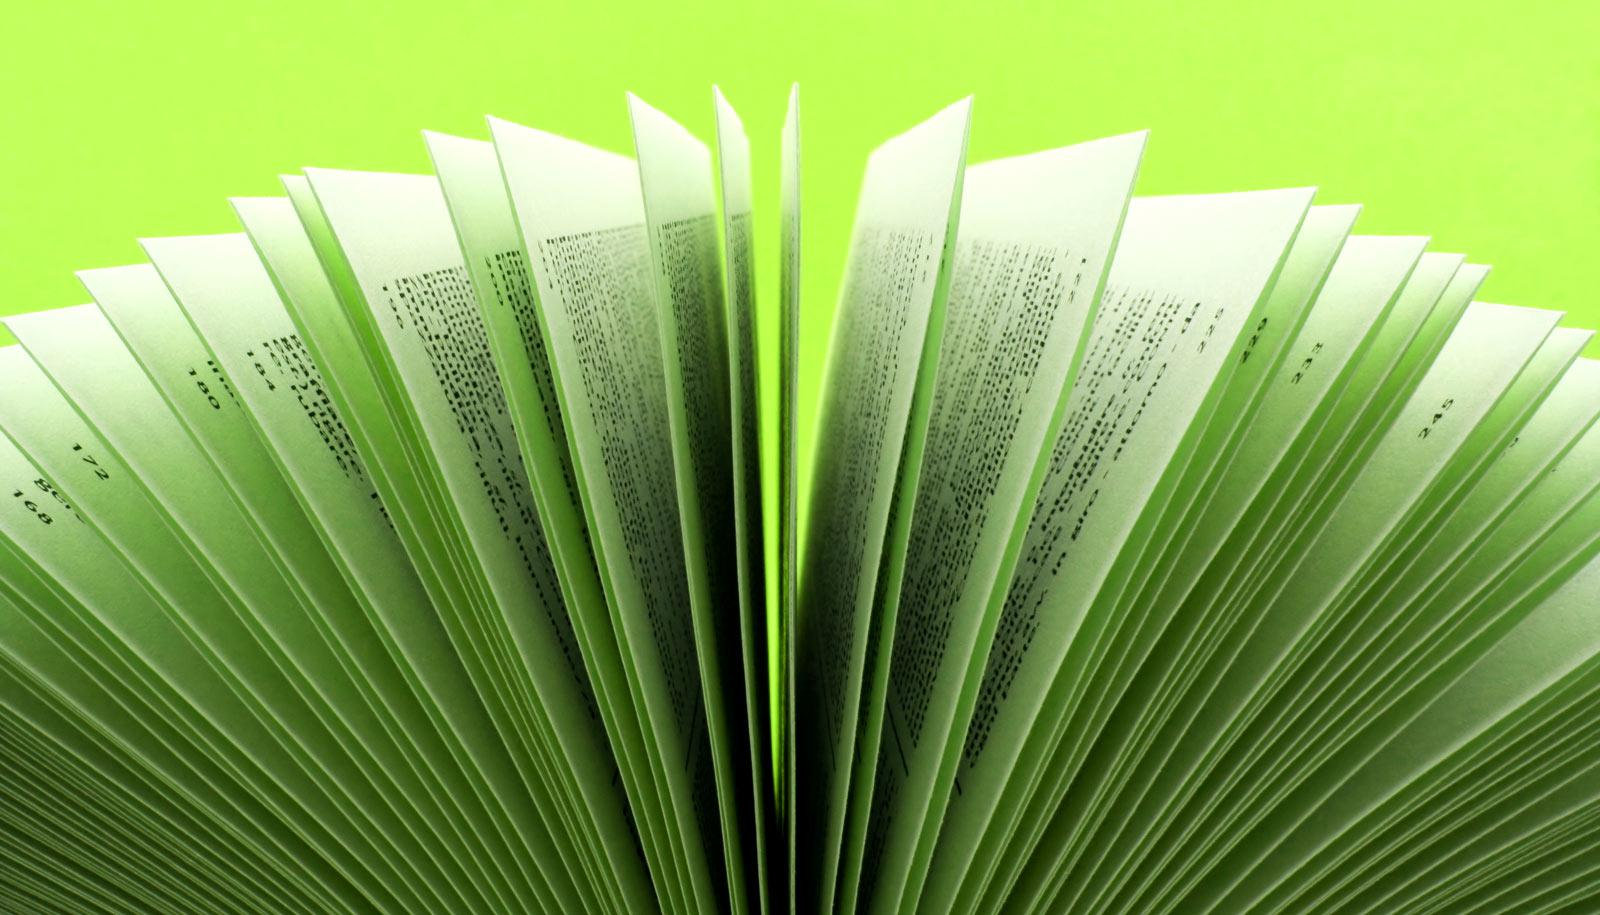 book pages fanned out